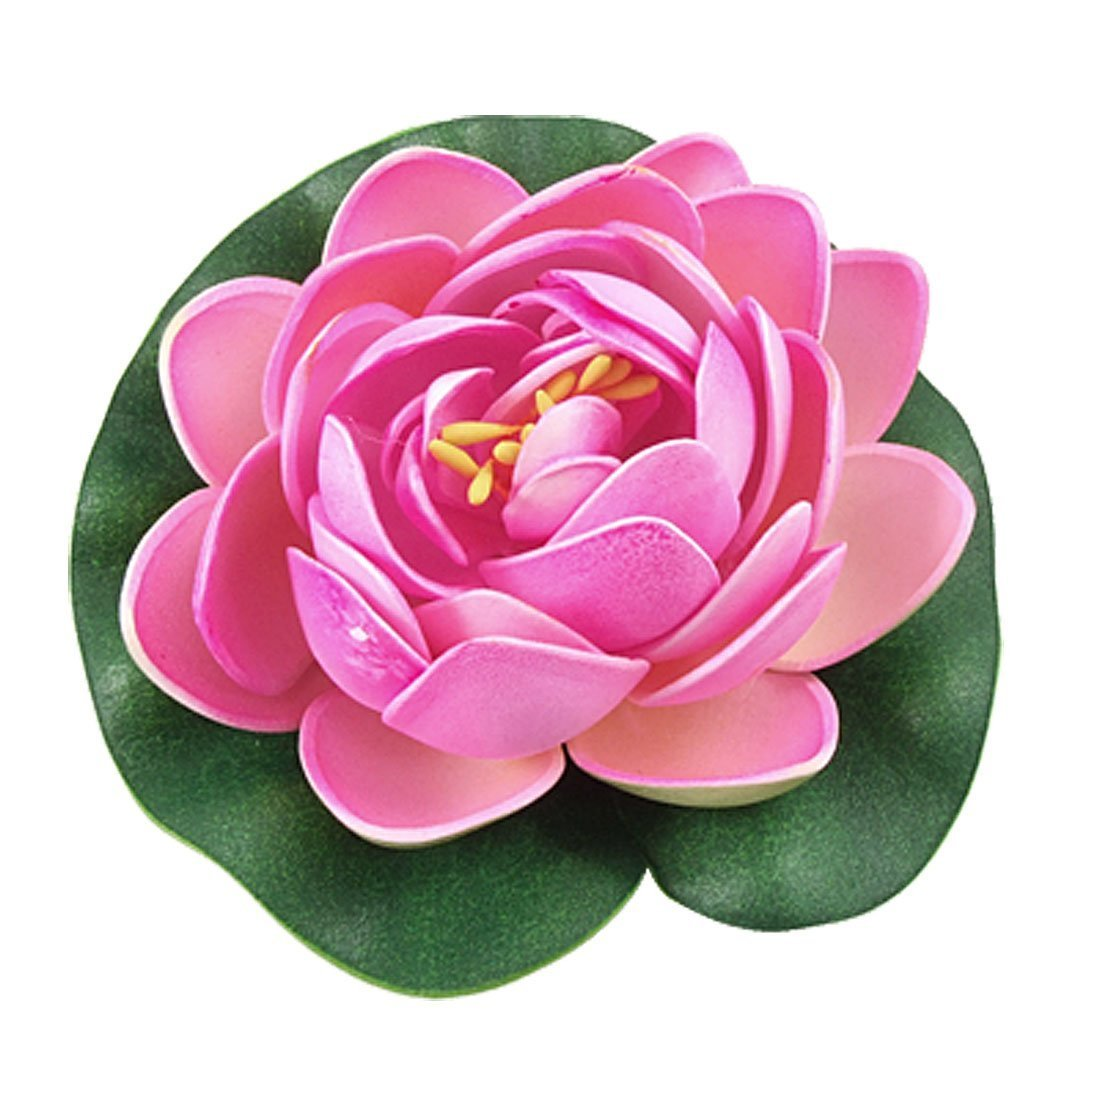 Artificial EVA Lotus Floating Water Lily Blooming Mini Foam Flower Head Pool Fish Tank Pond Home Garden Decoration (Pink, 40cm)